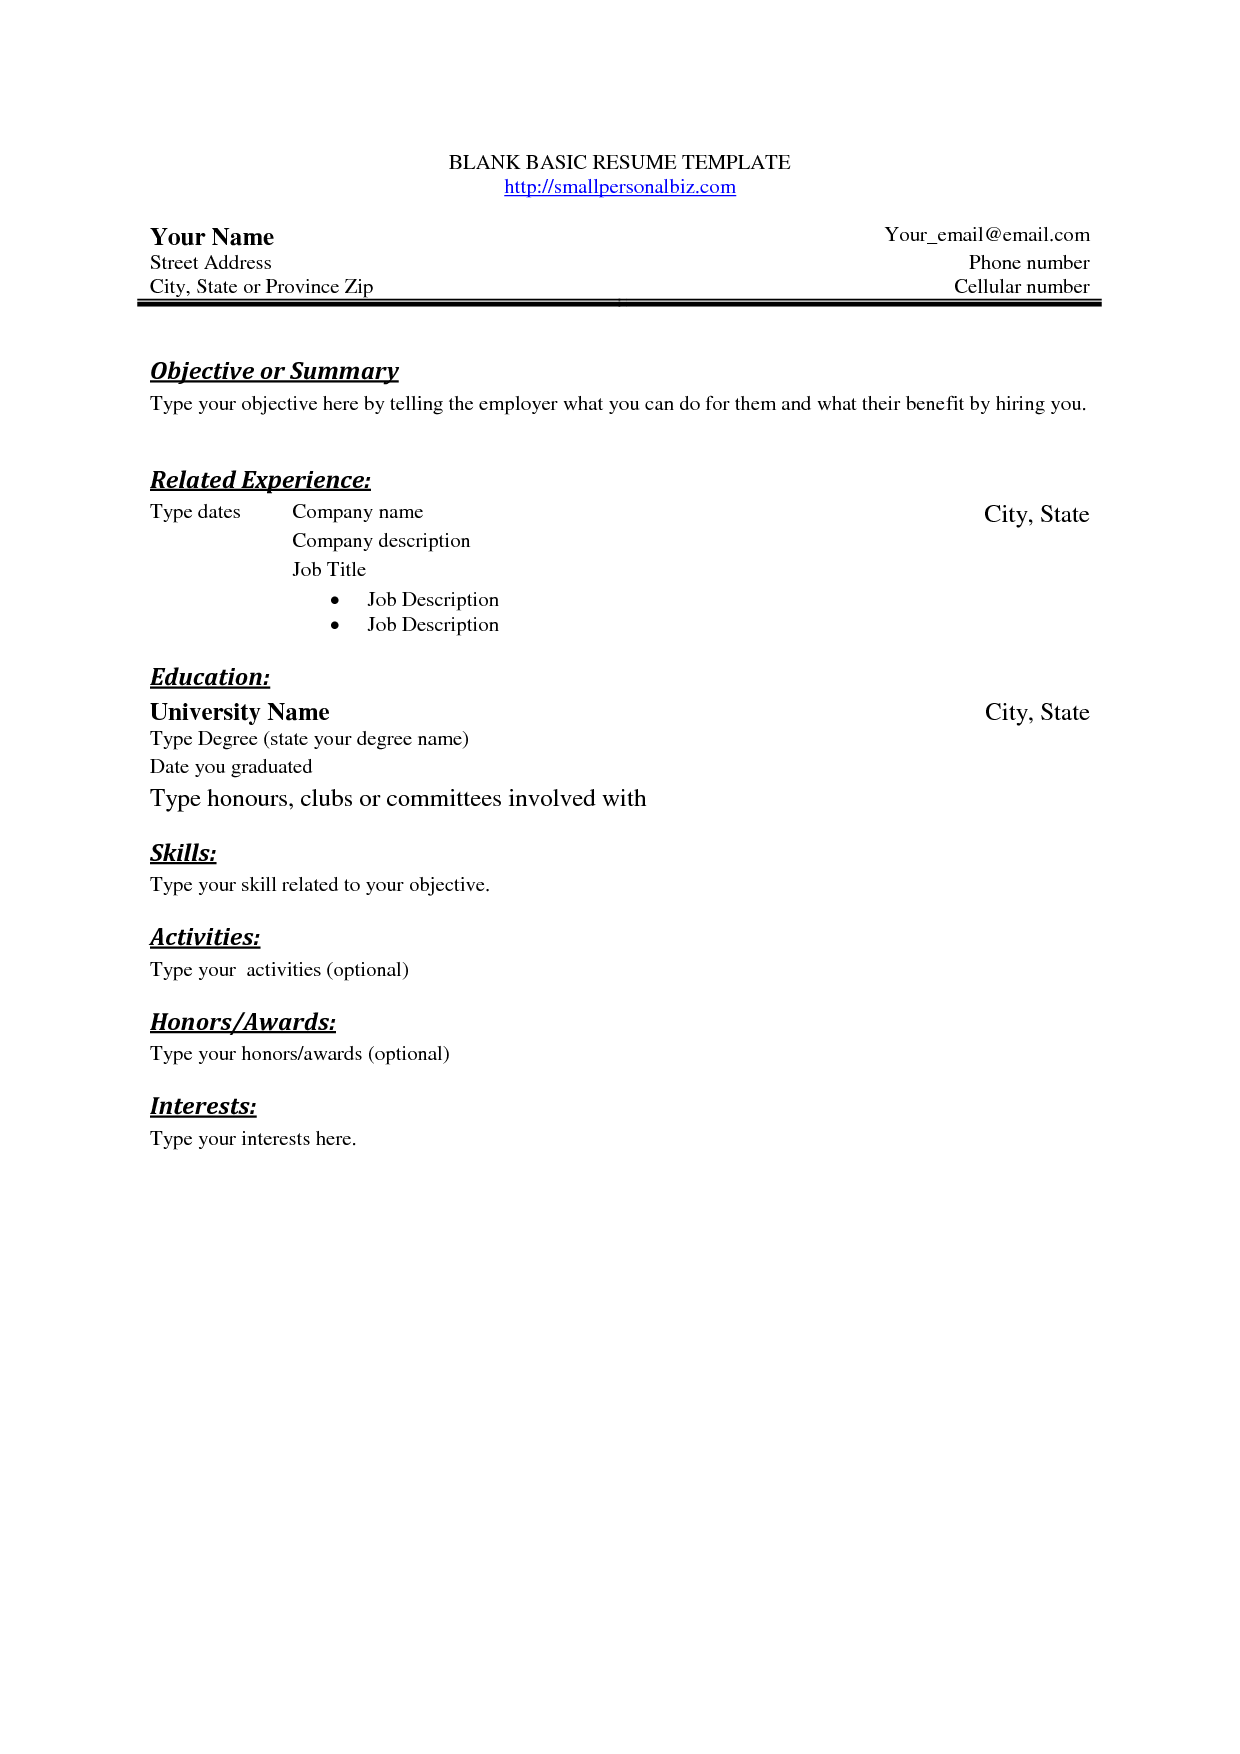 Stylist And Luxury Simple Resume Layout 10 Free Basic Blank Resume ...